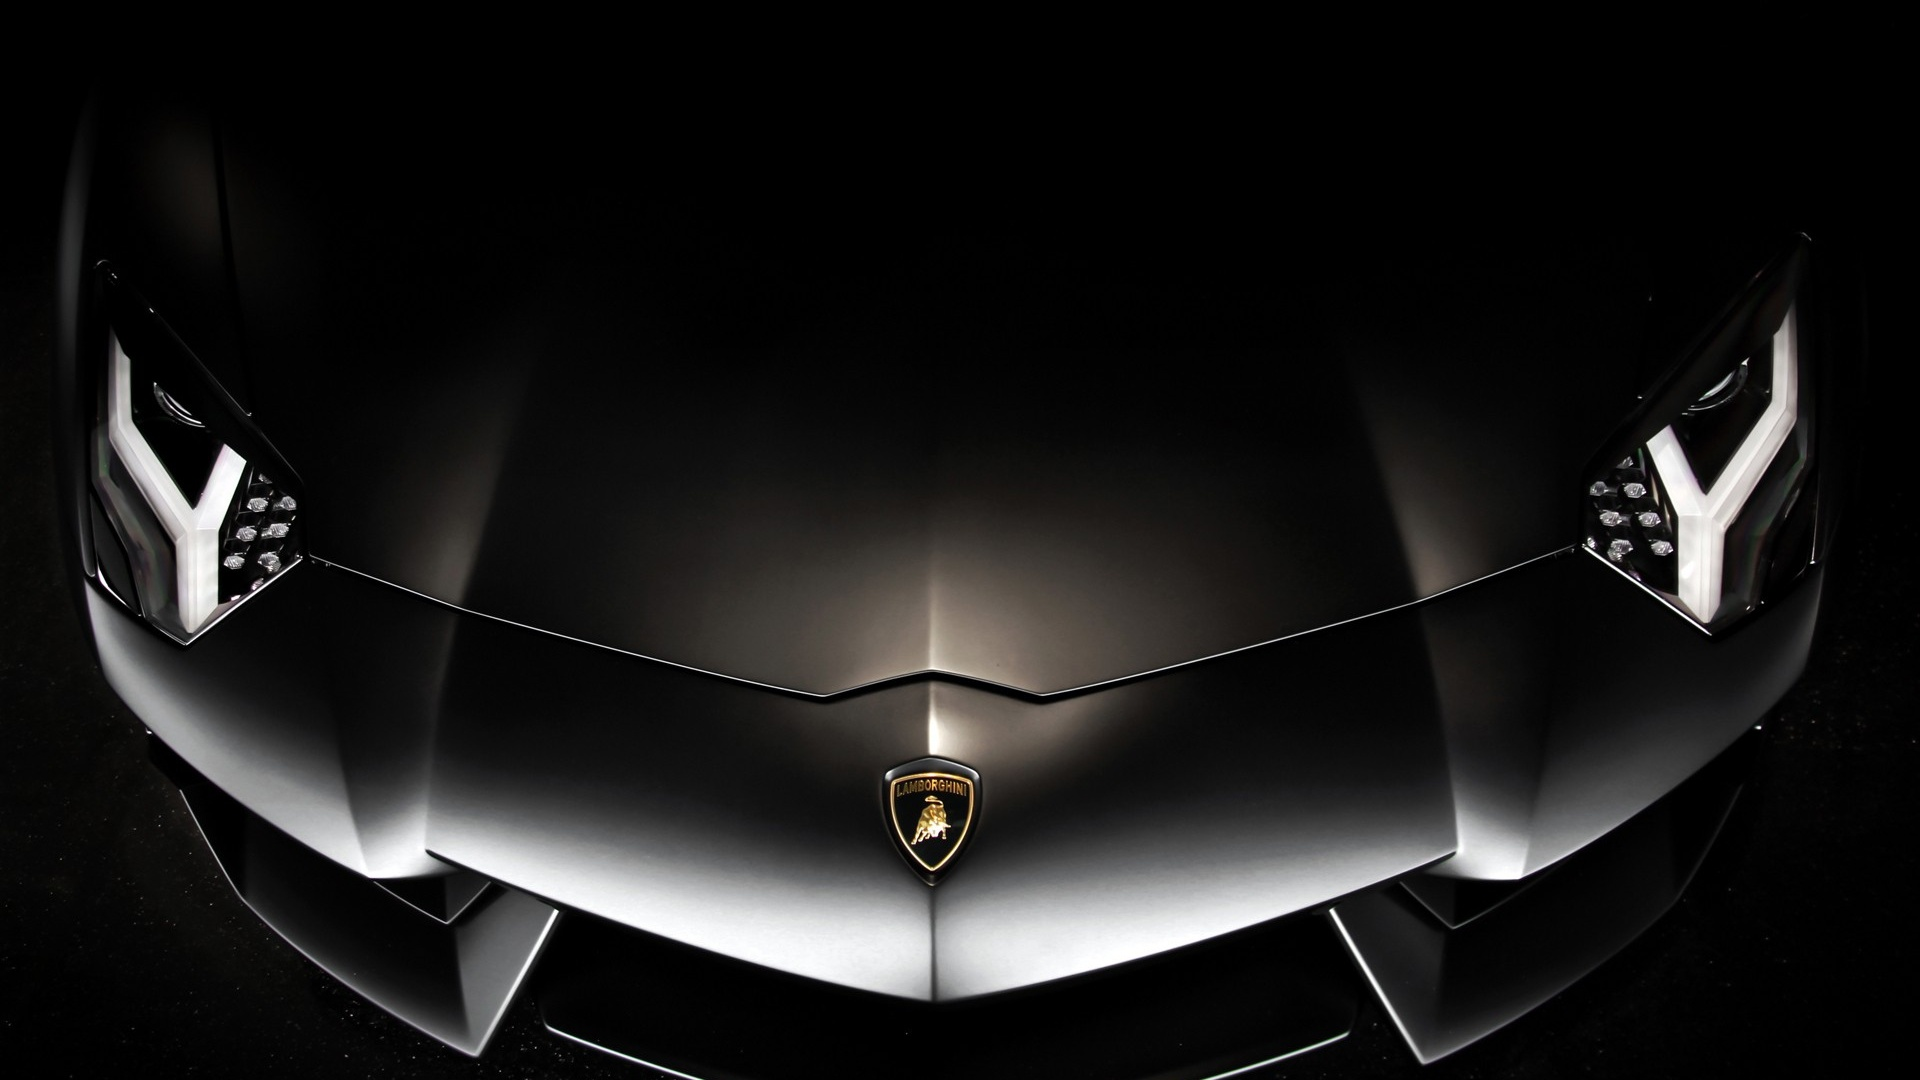 aventador wallpaper1920 x - photo #33